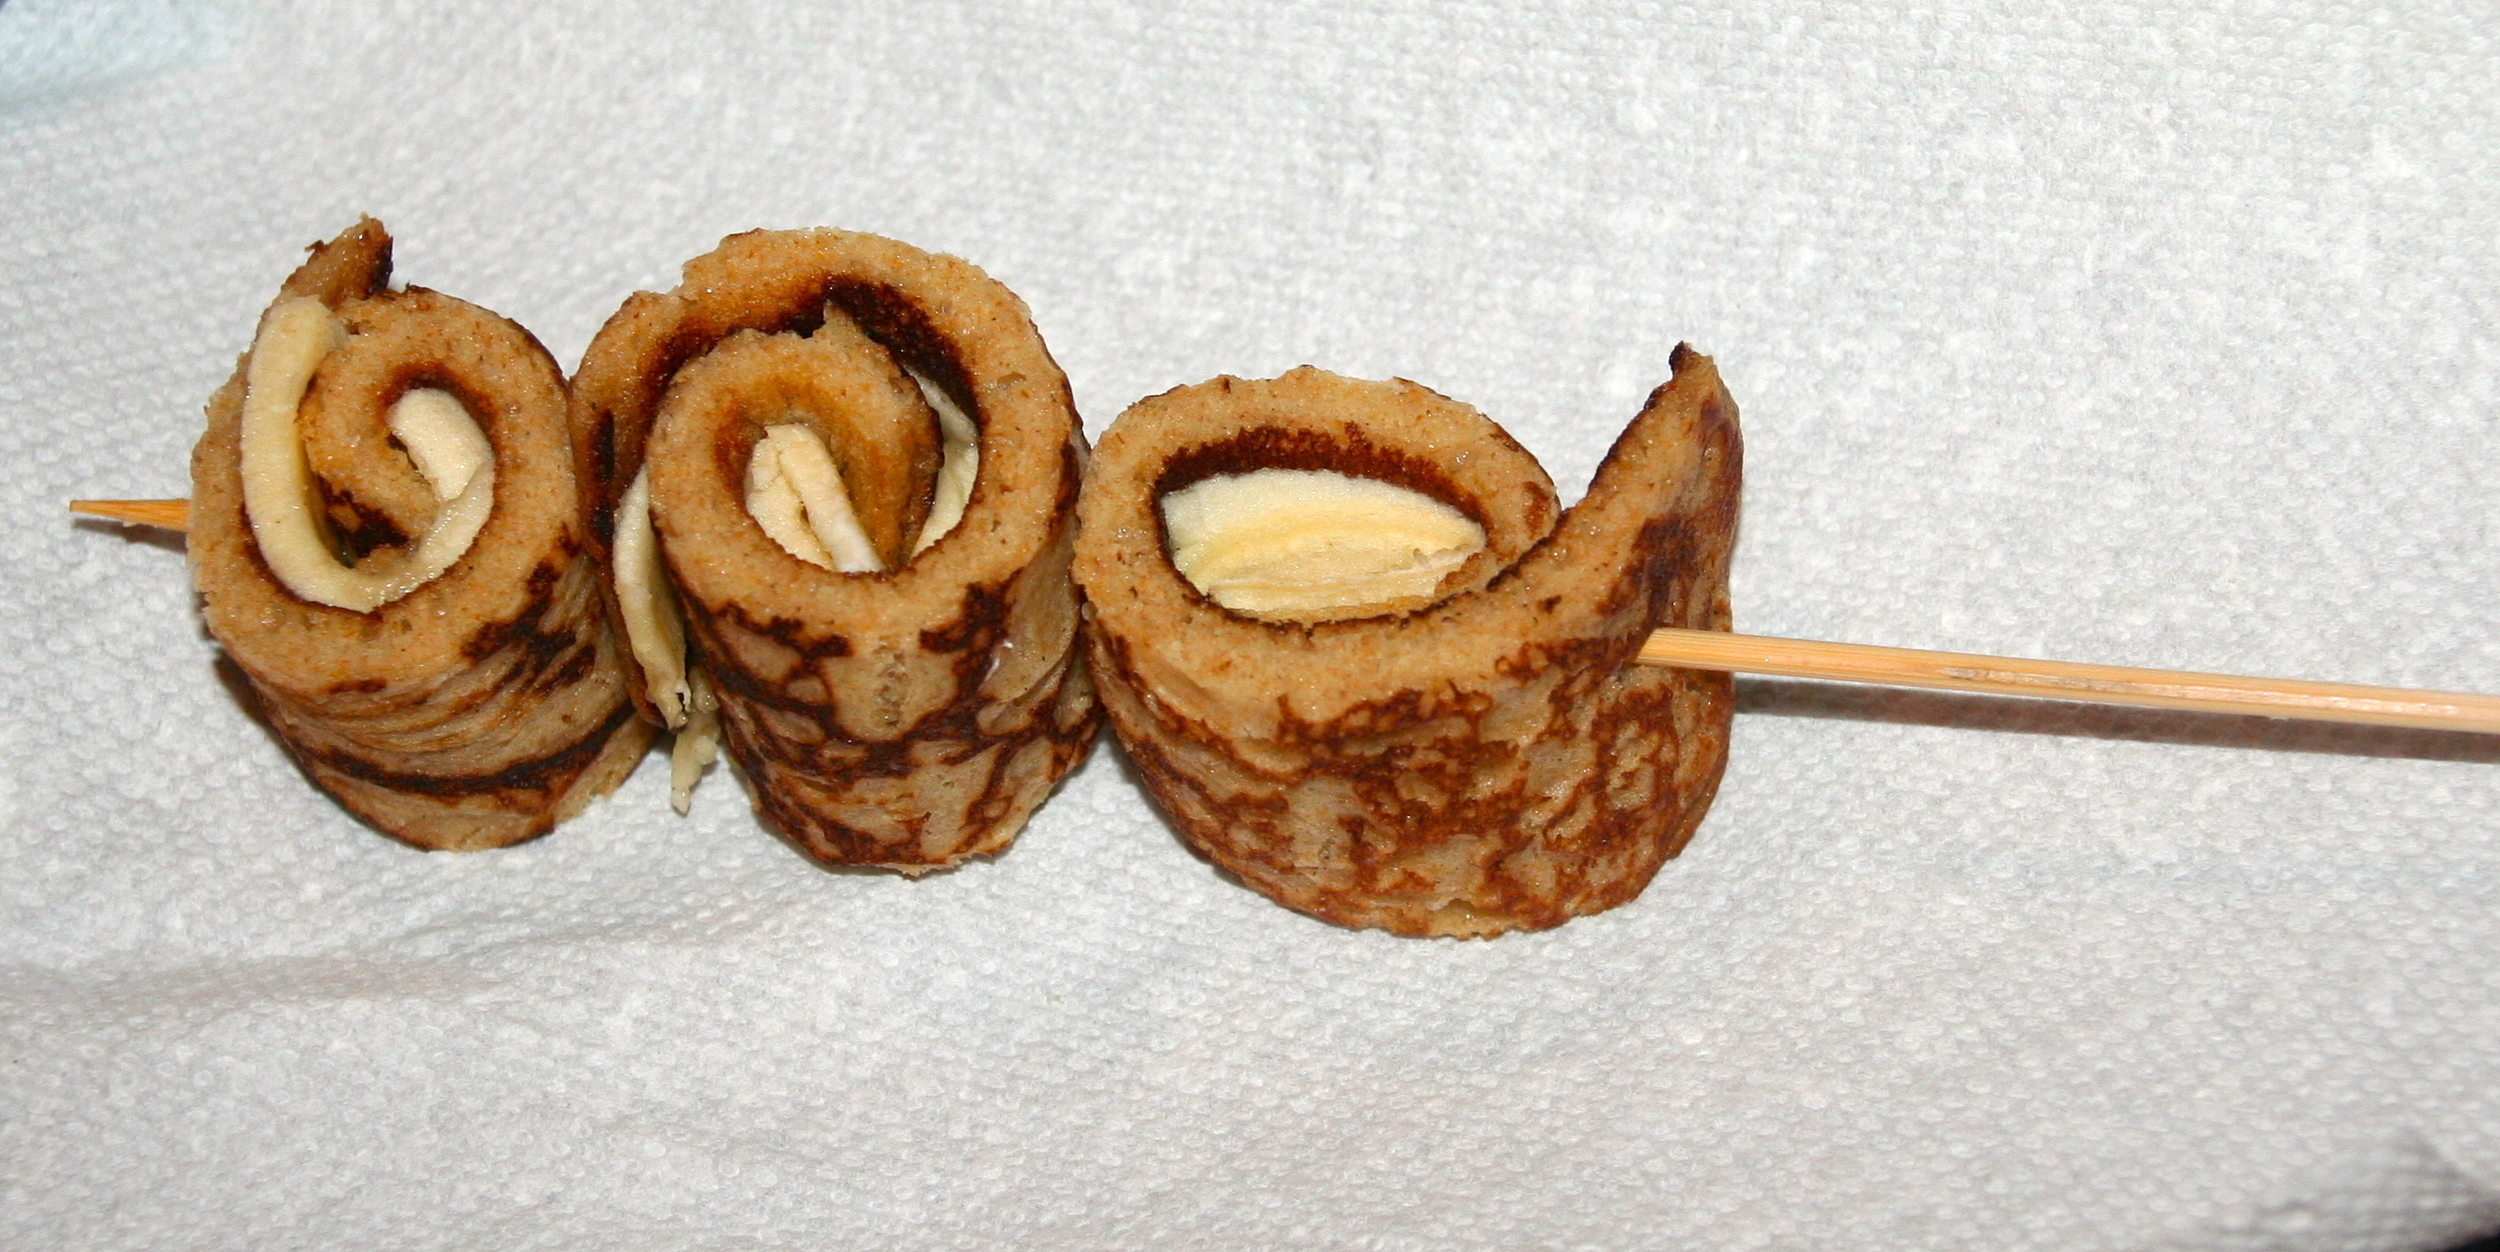 Spear rolled up banana pancakes with kebab stick